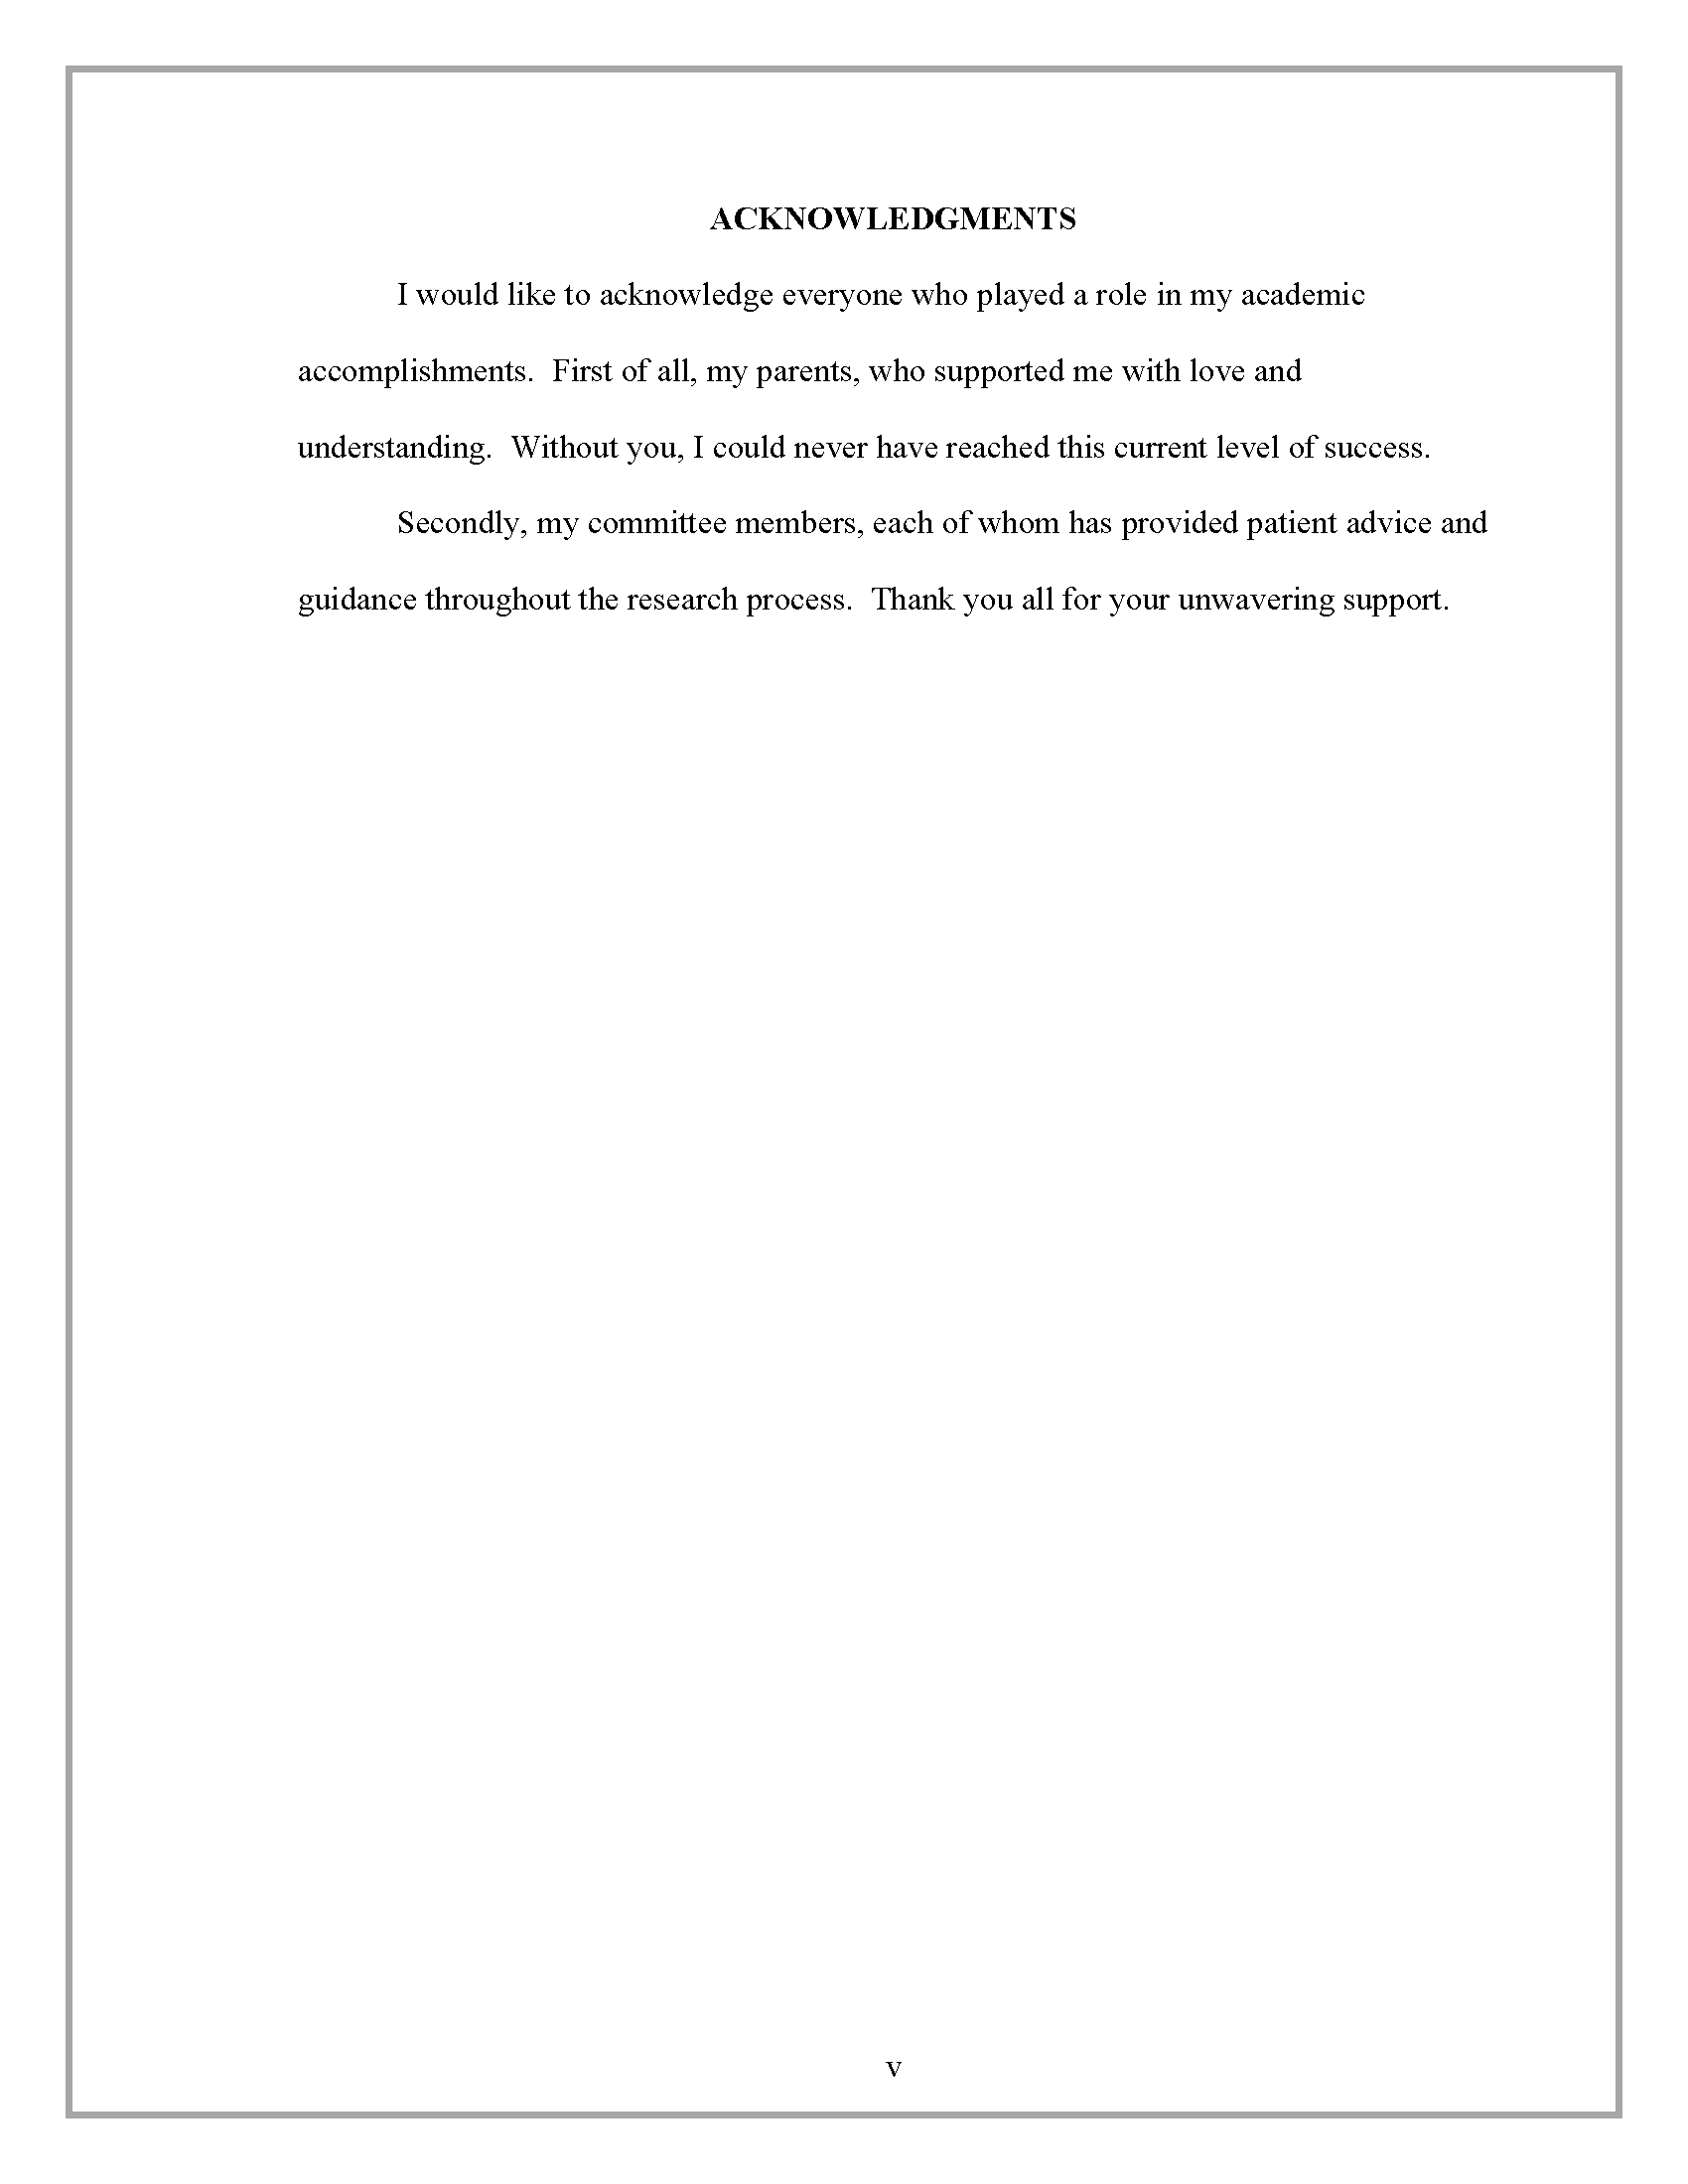 001 Example Of Acknowledgement In Research Paper Acknowledgment Border Remarkable Dedication And Pdf For Students Full